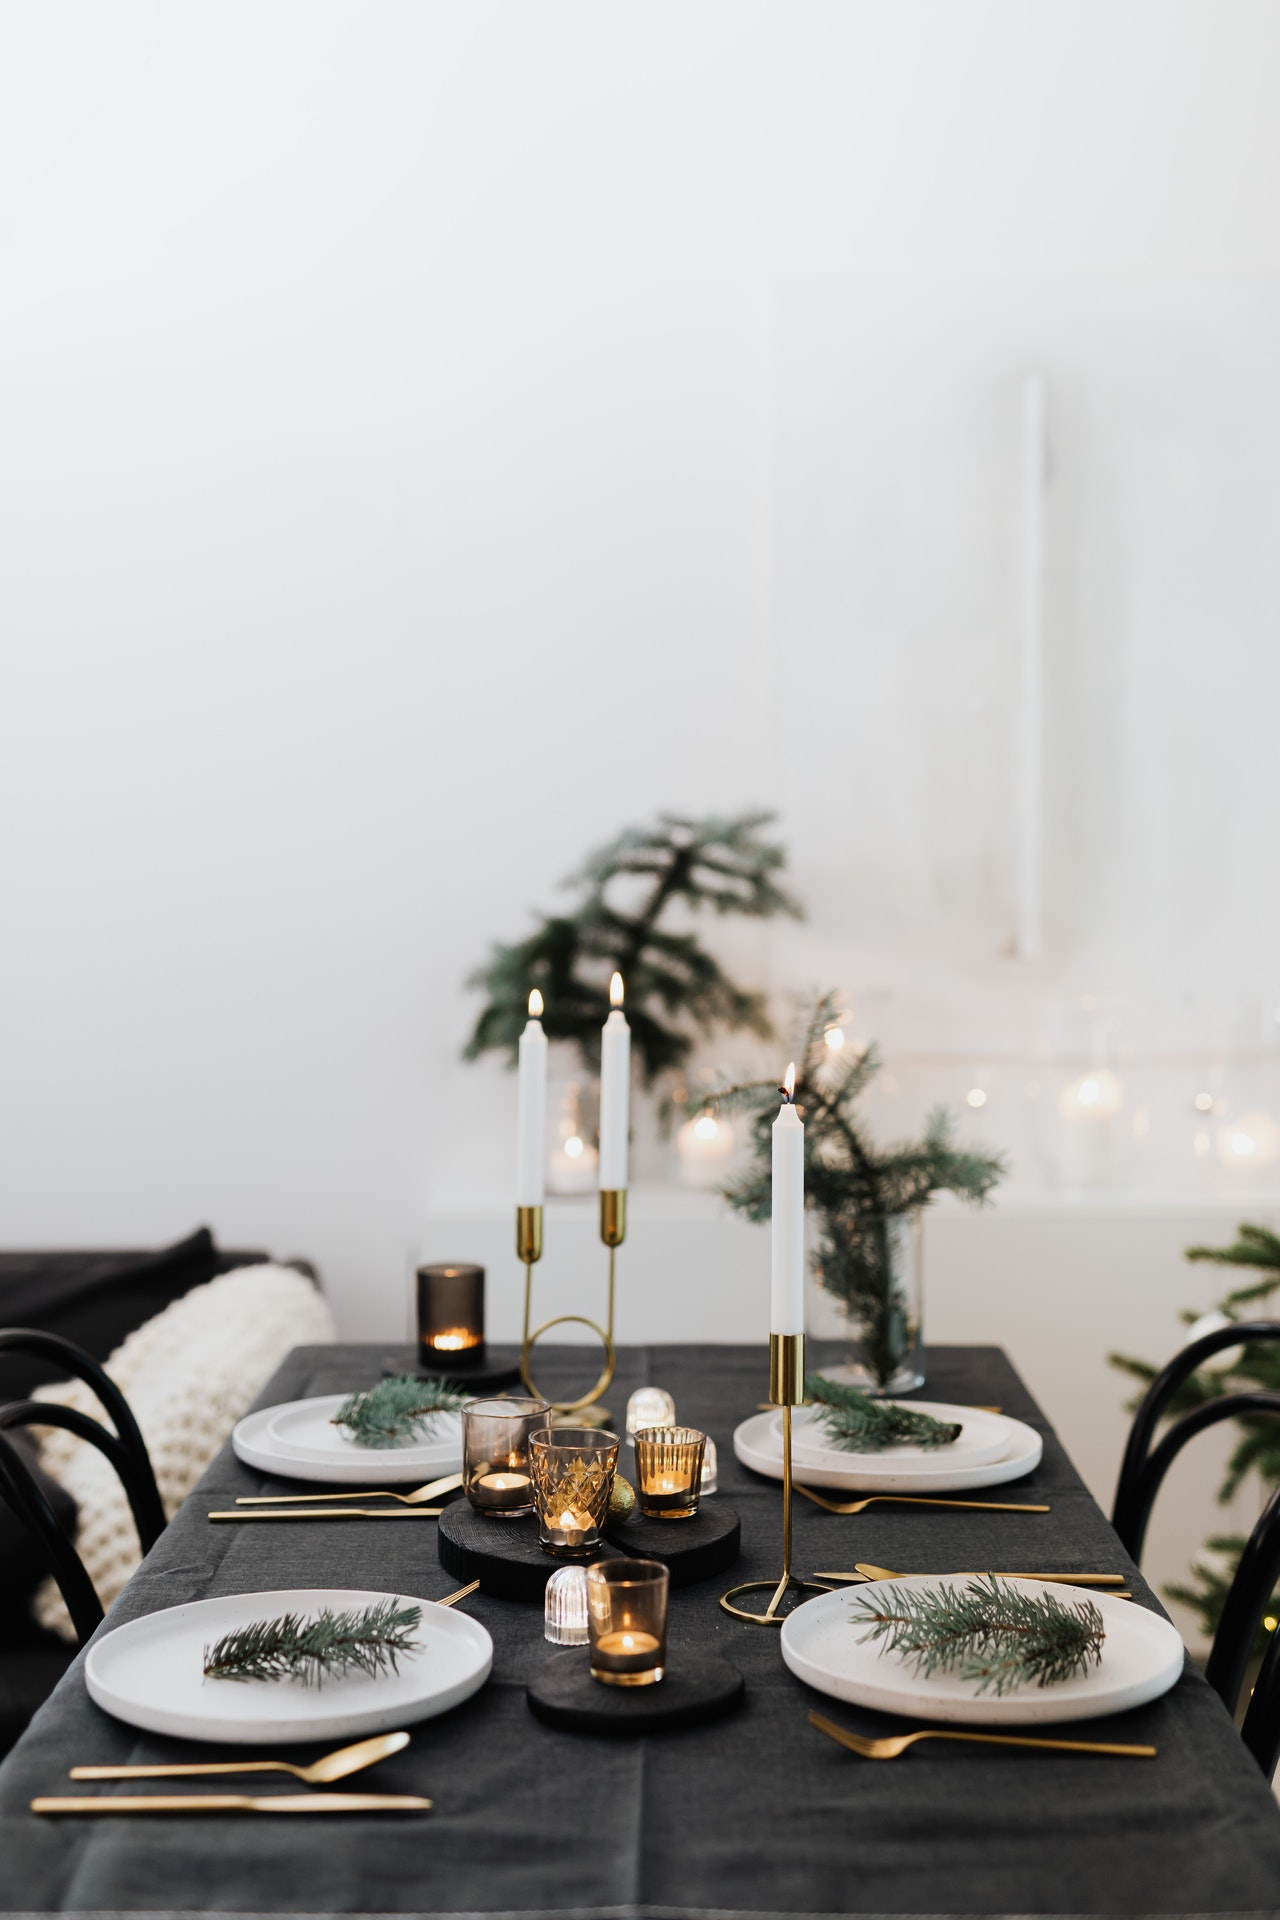 Ways to Make Your Home Feel Cozier